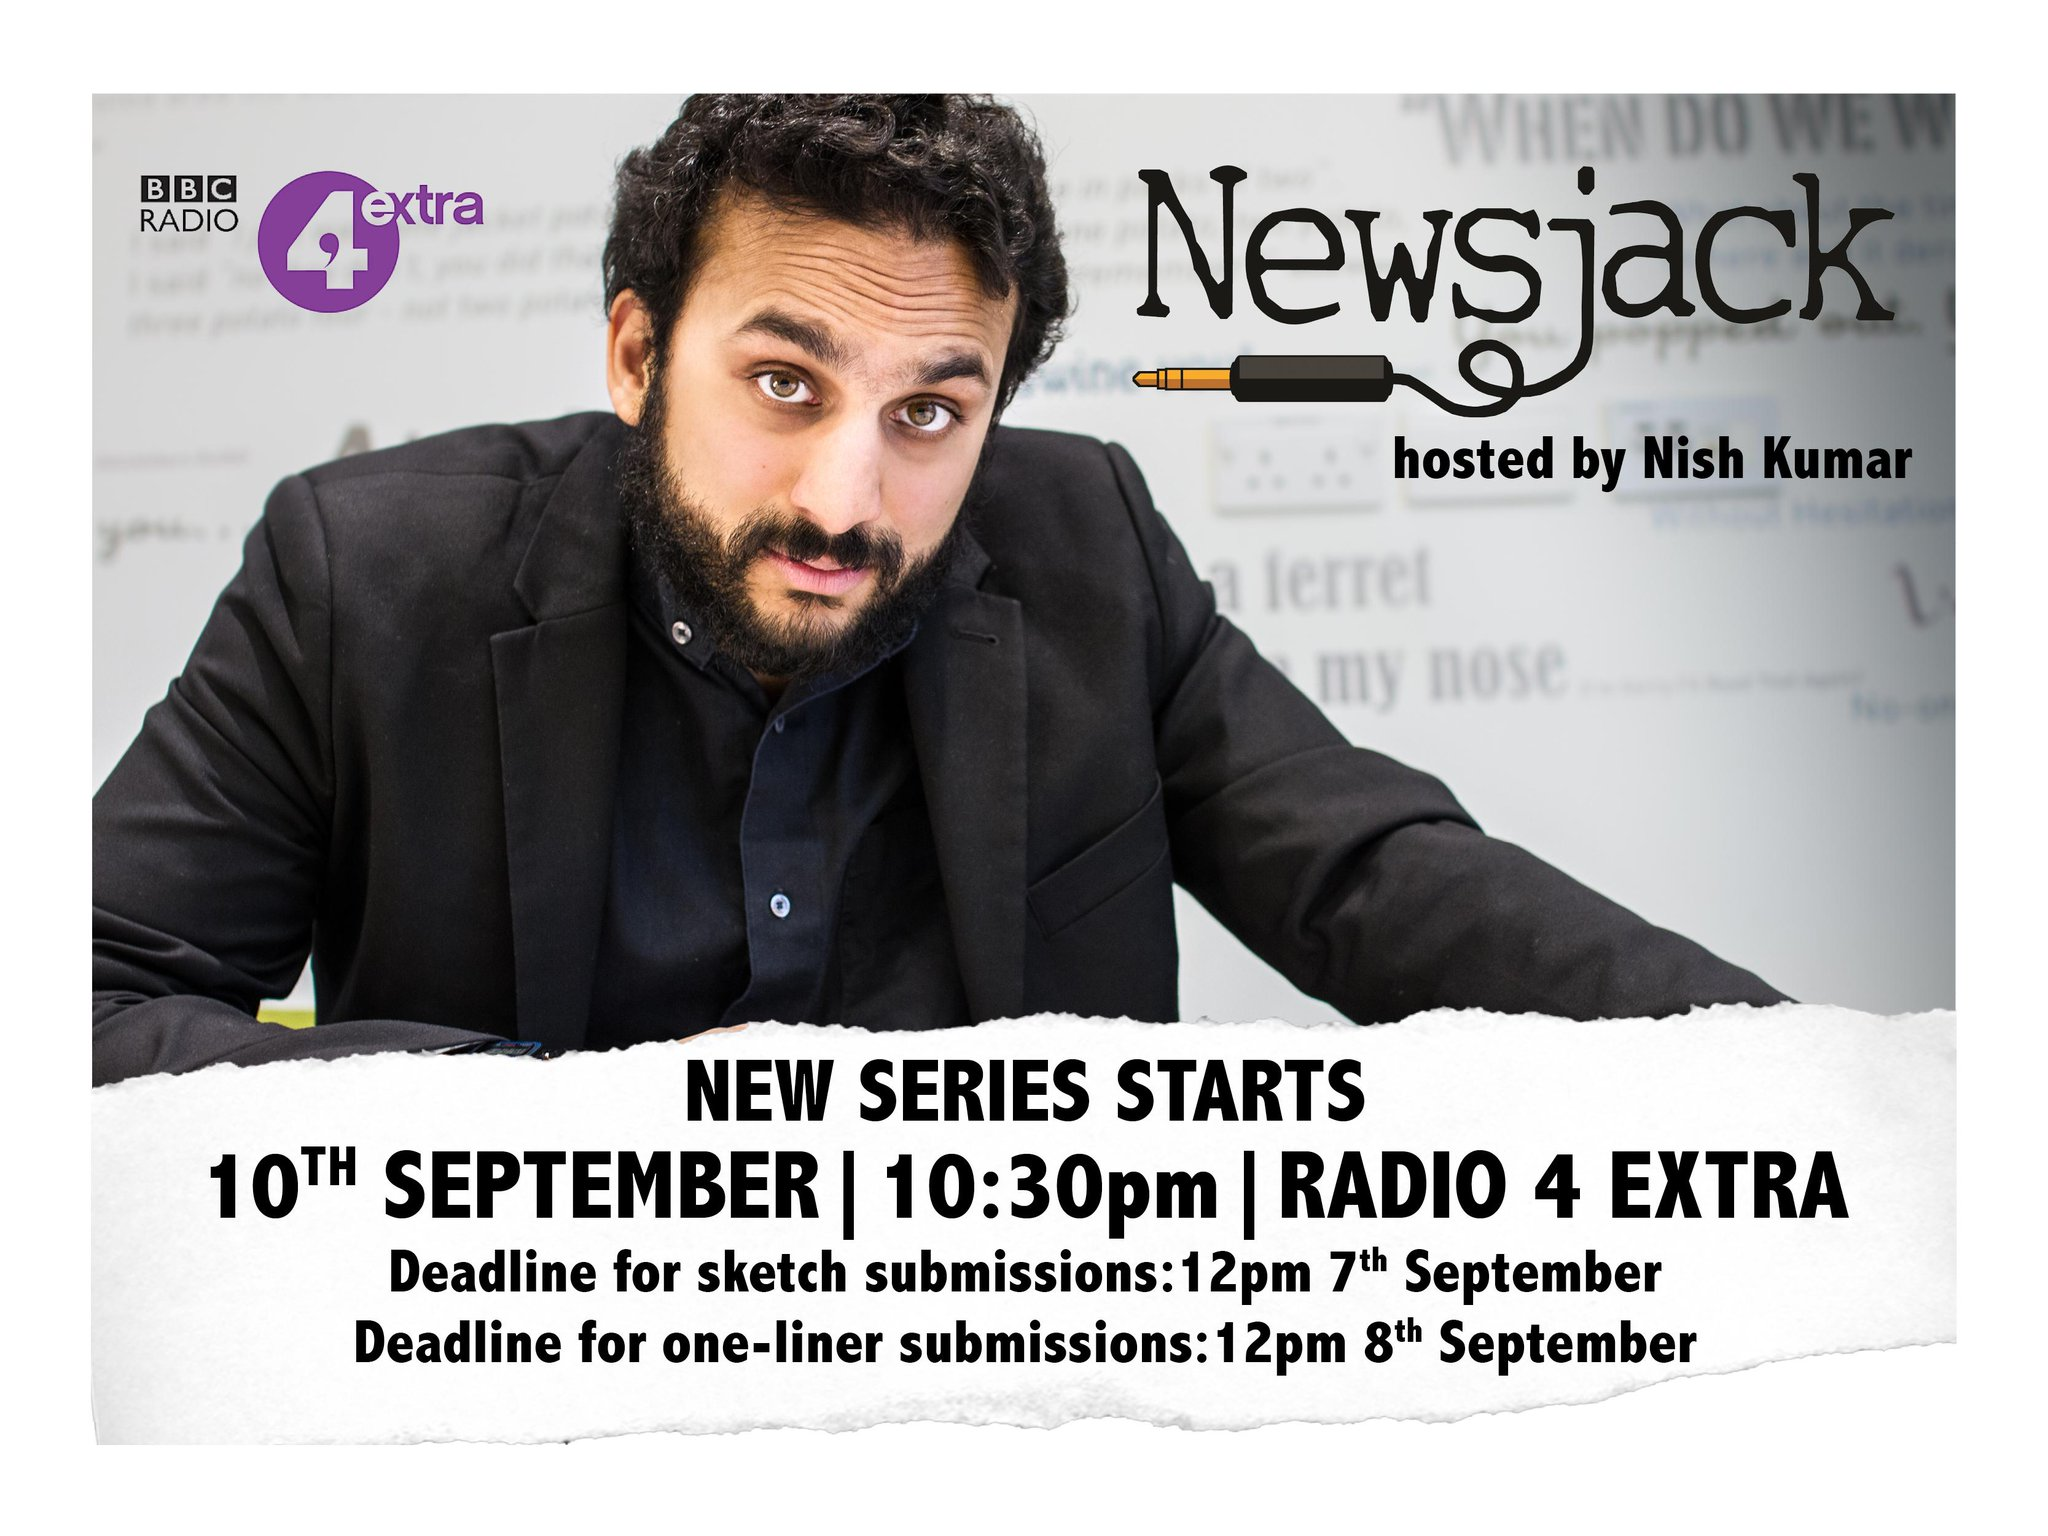 RT @NewsjackBBC: It's nearly Newsjack time! The first sketch submission deadline is noon on Monday 7th September. http://t.co/aYWsvDmcHv